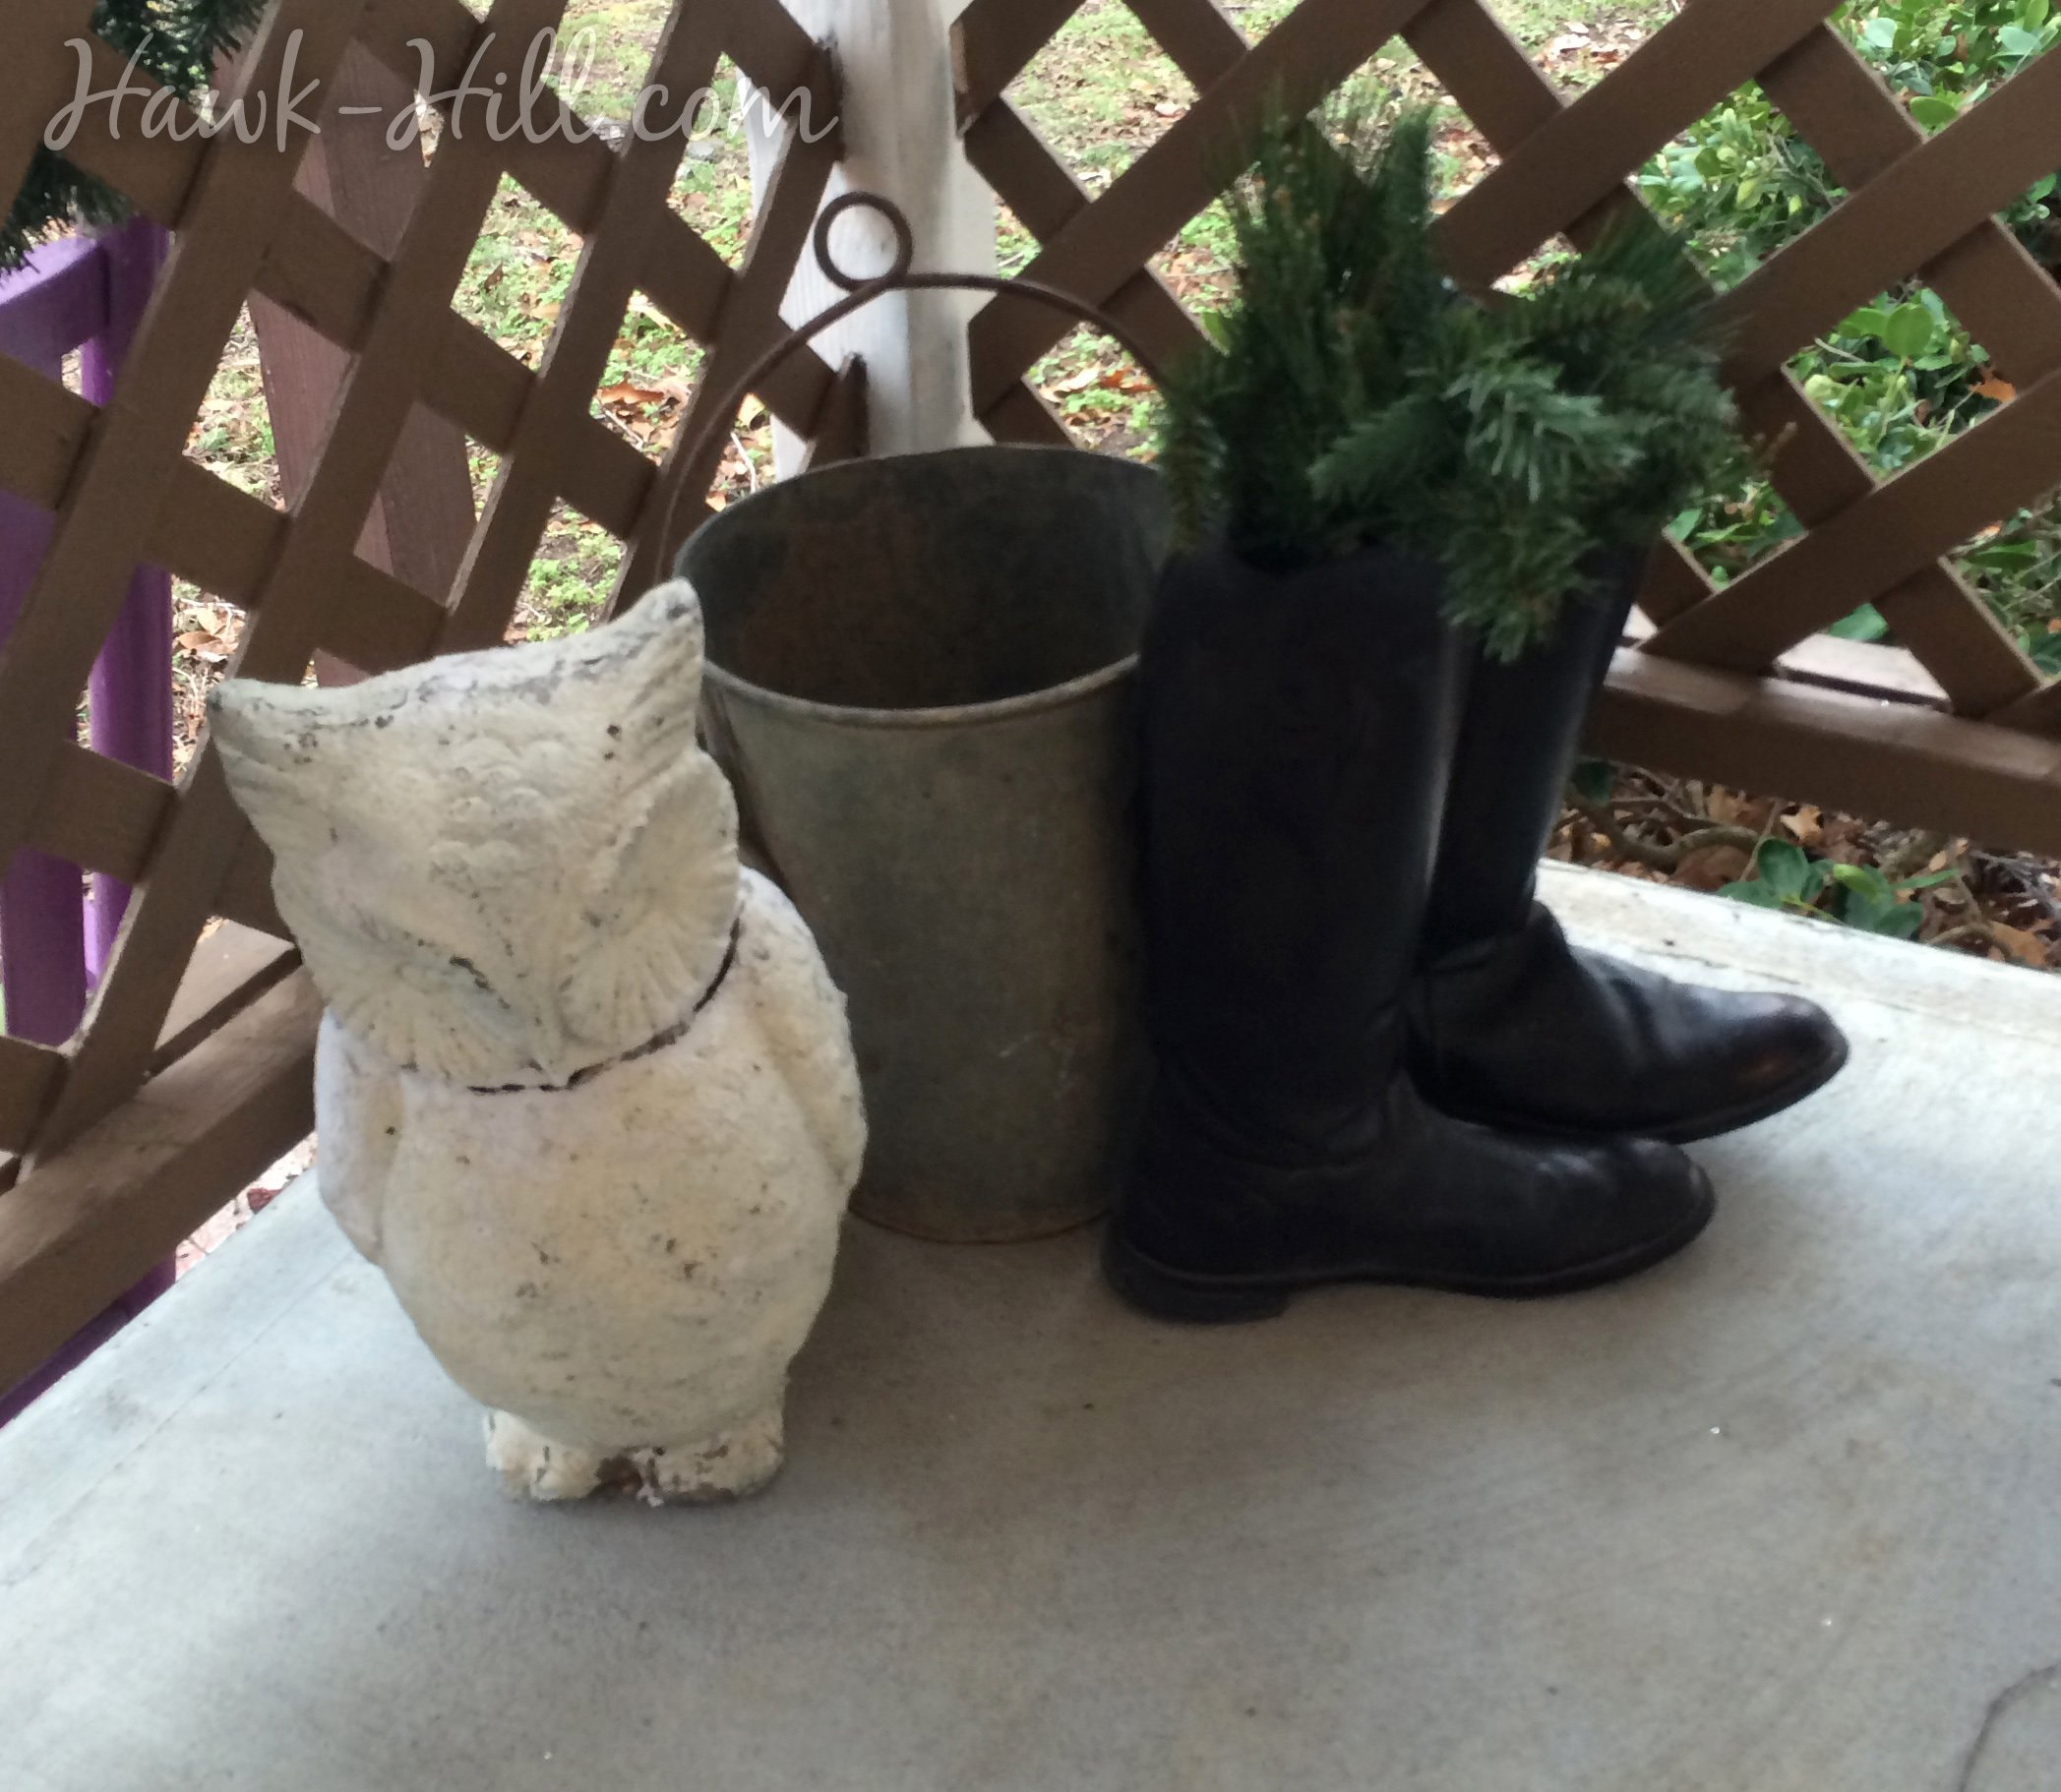 Riding boots used for equestrian holiday decor